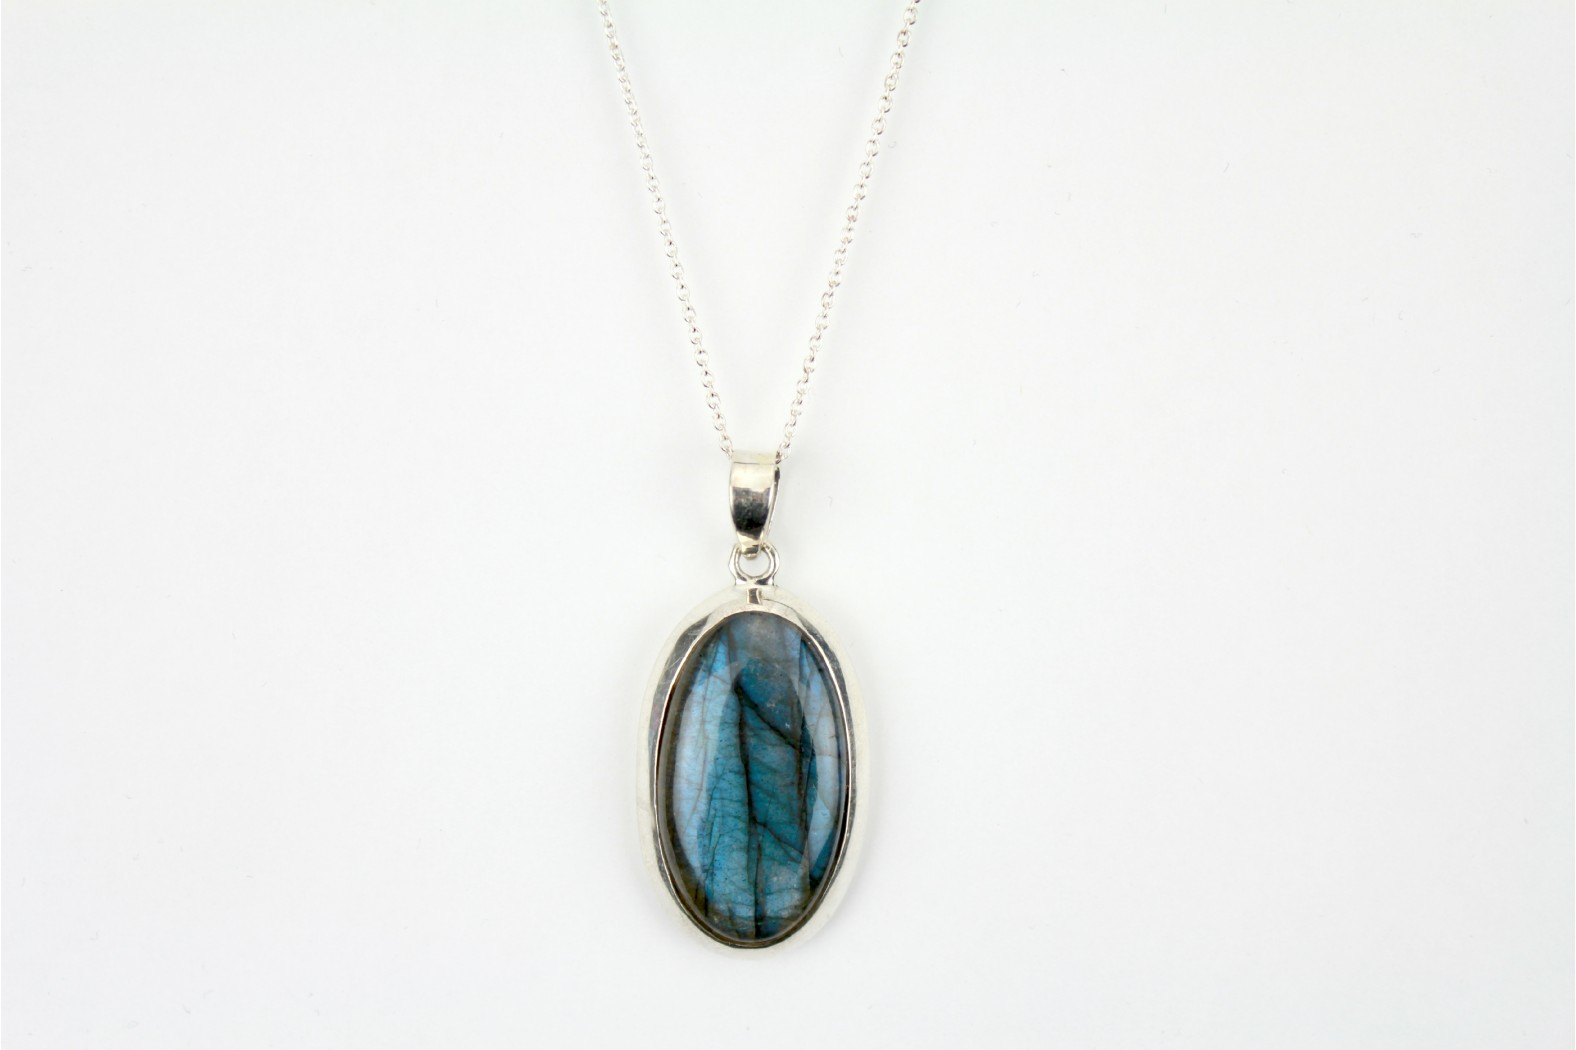 Blue Labradorite Oval set on Thick Silver with 20ins.50cm Cable Chain. TEMPORARILY OUT OF STOCK